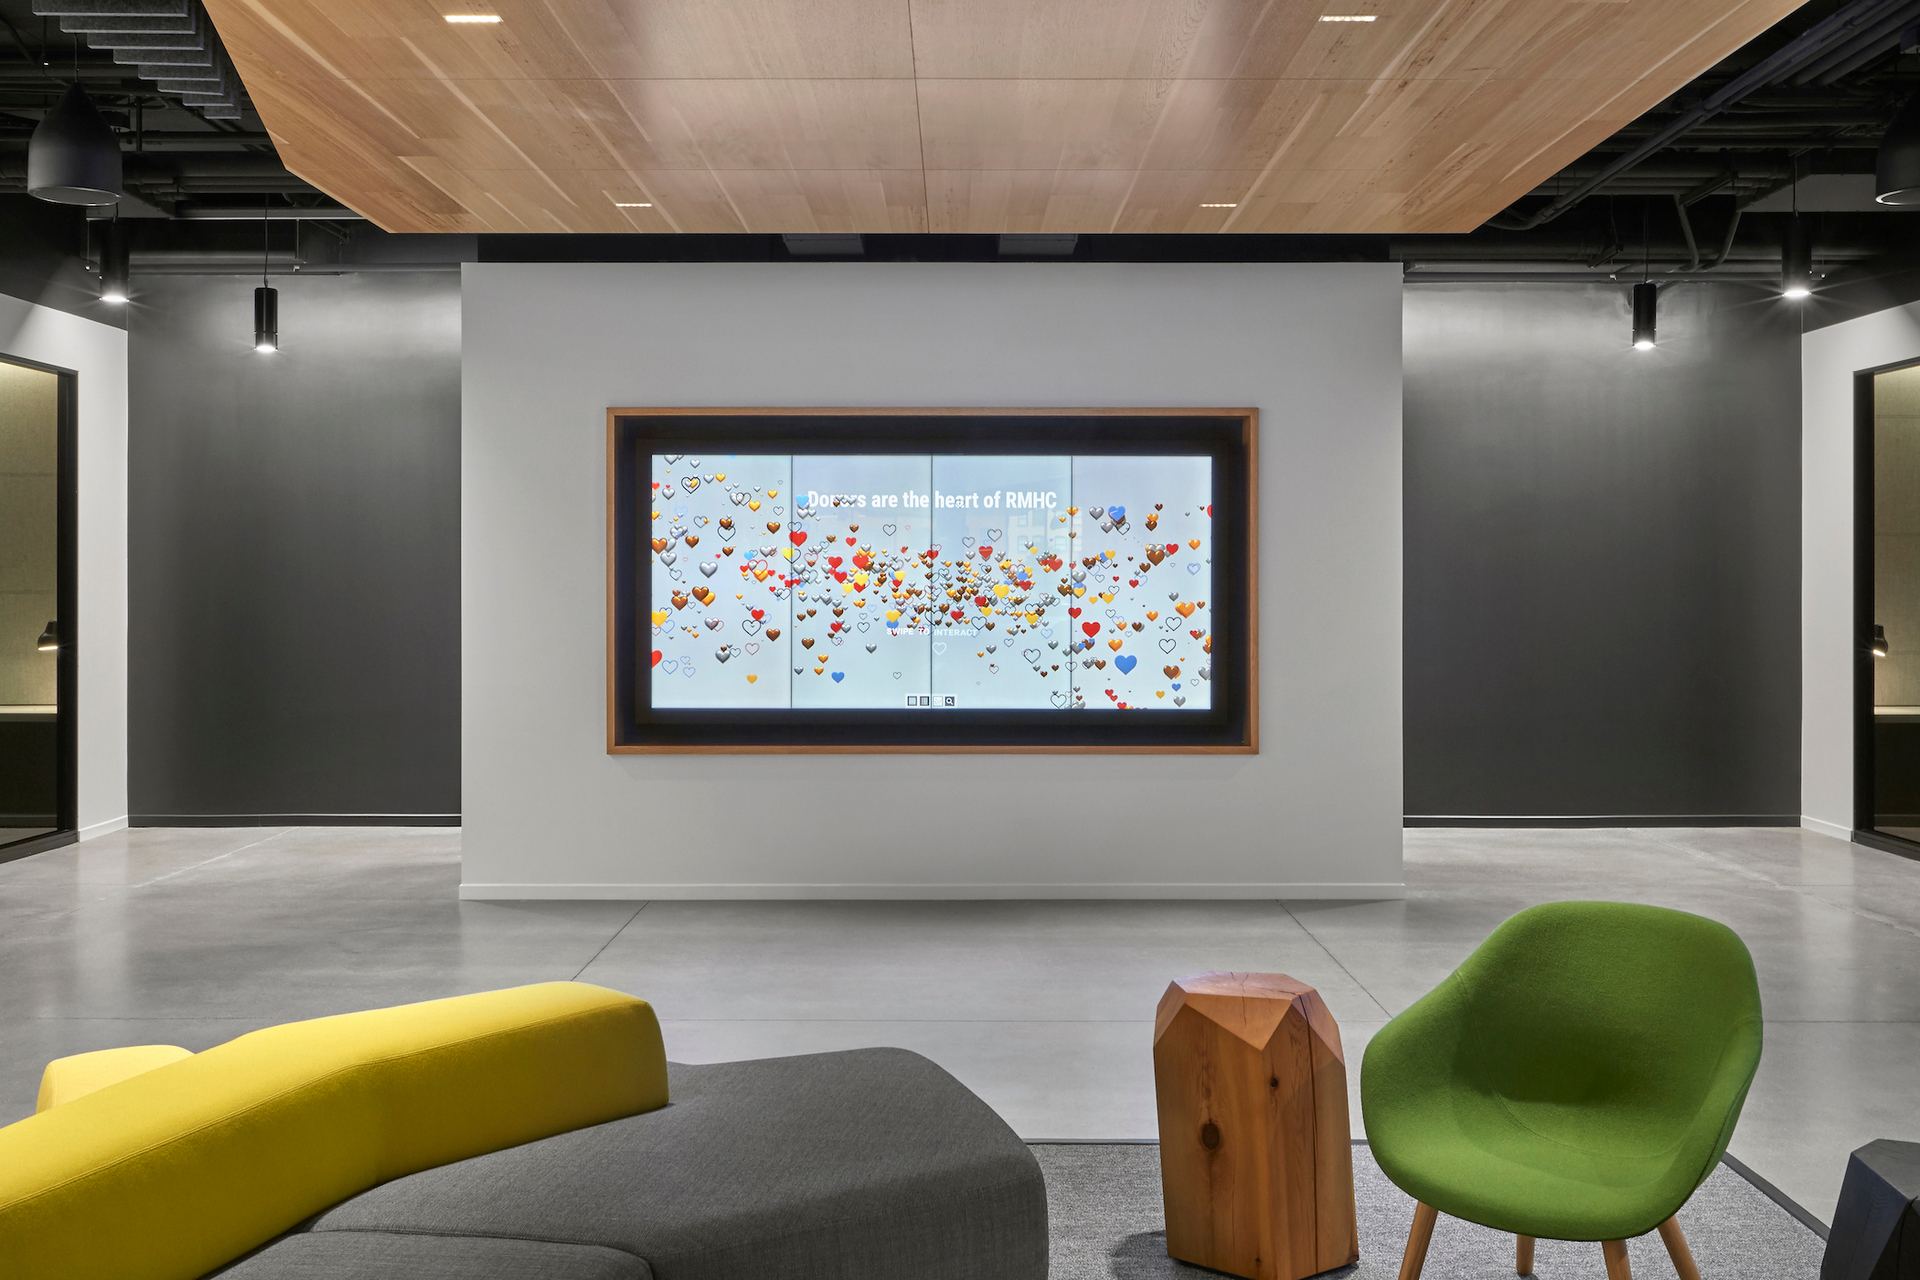 A relaxing and spacious common area at the McDonald's Headquarters in Chicago, Illinois, featuring Atria 4 architectural indoor luminaire by Meteor Lighting.